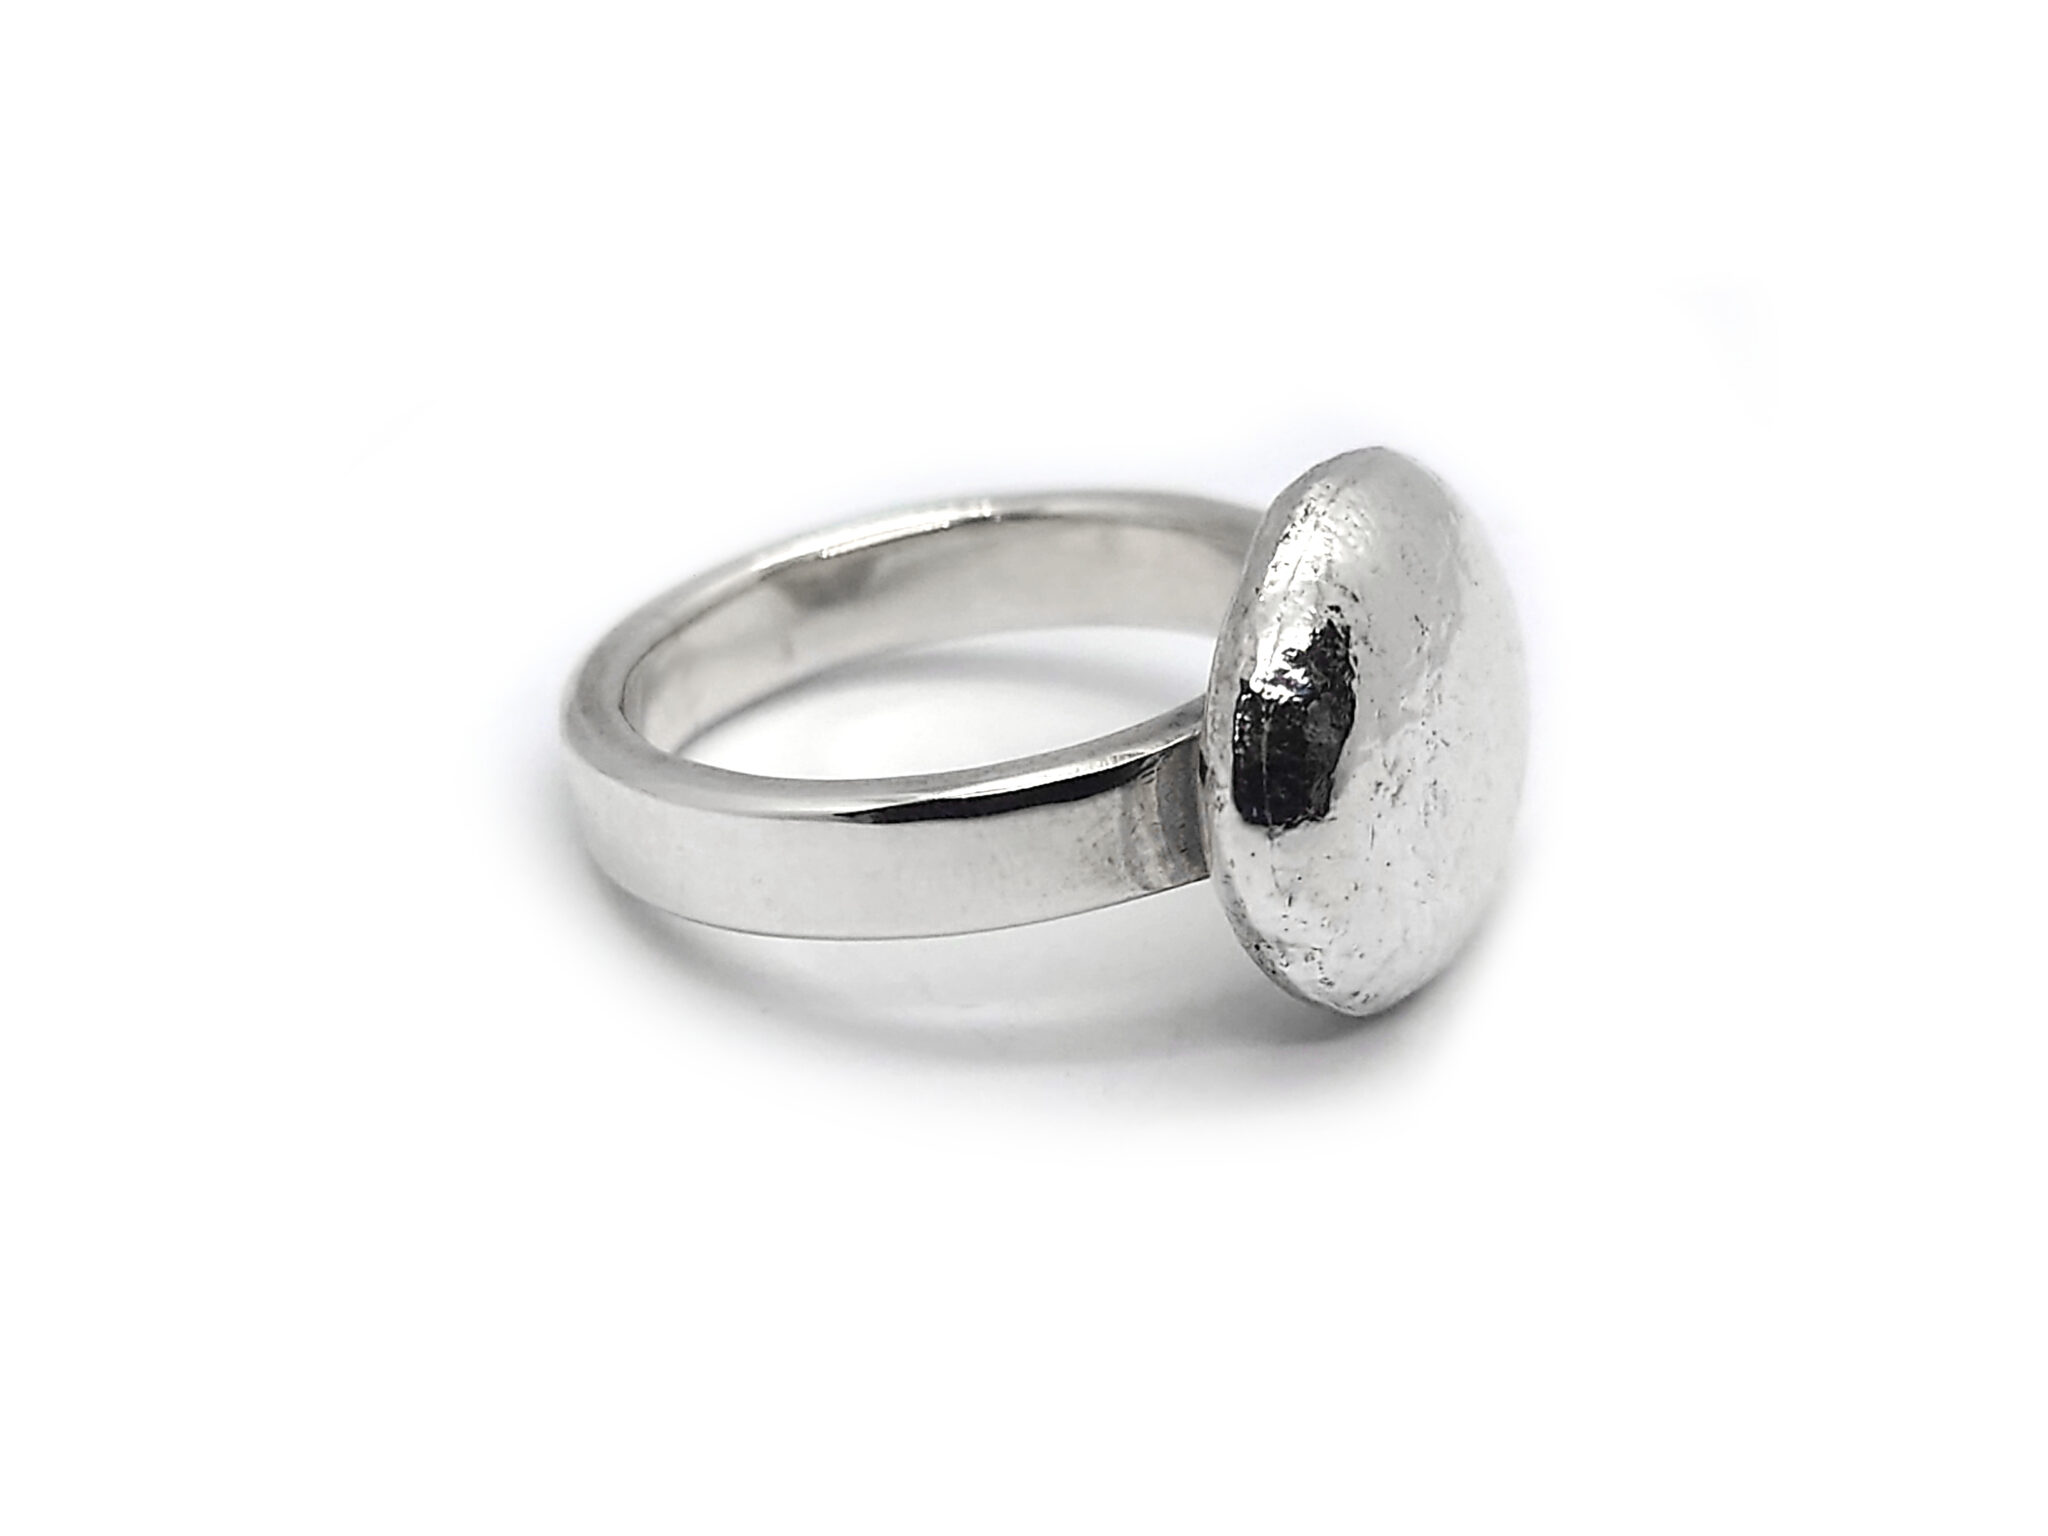 Bud Sterling Silver Ring By R-Process